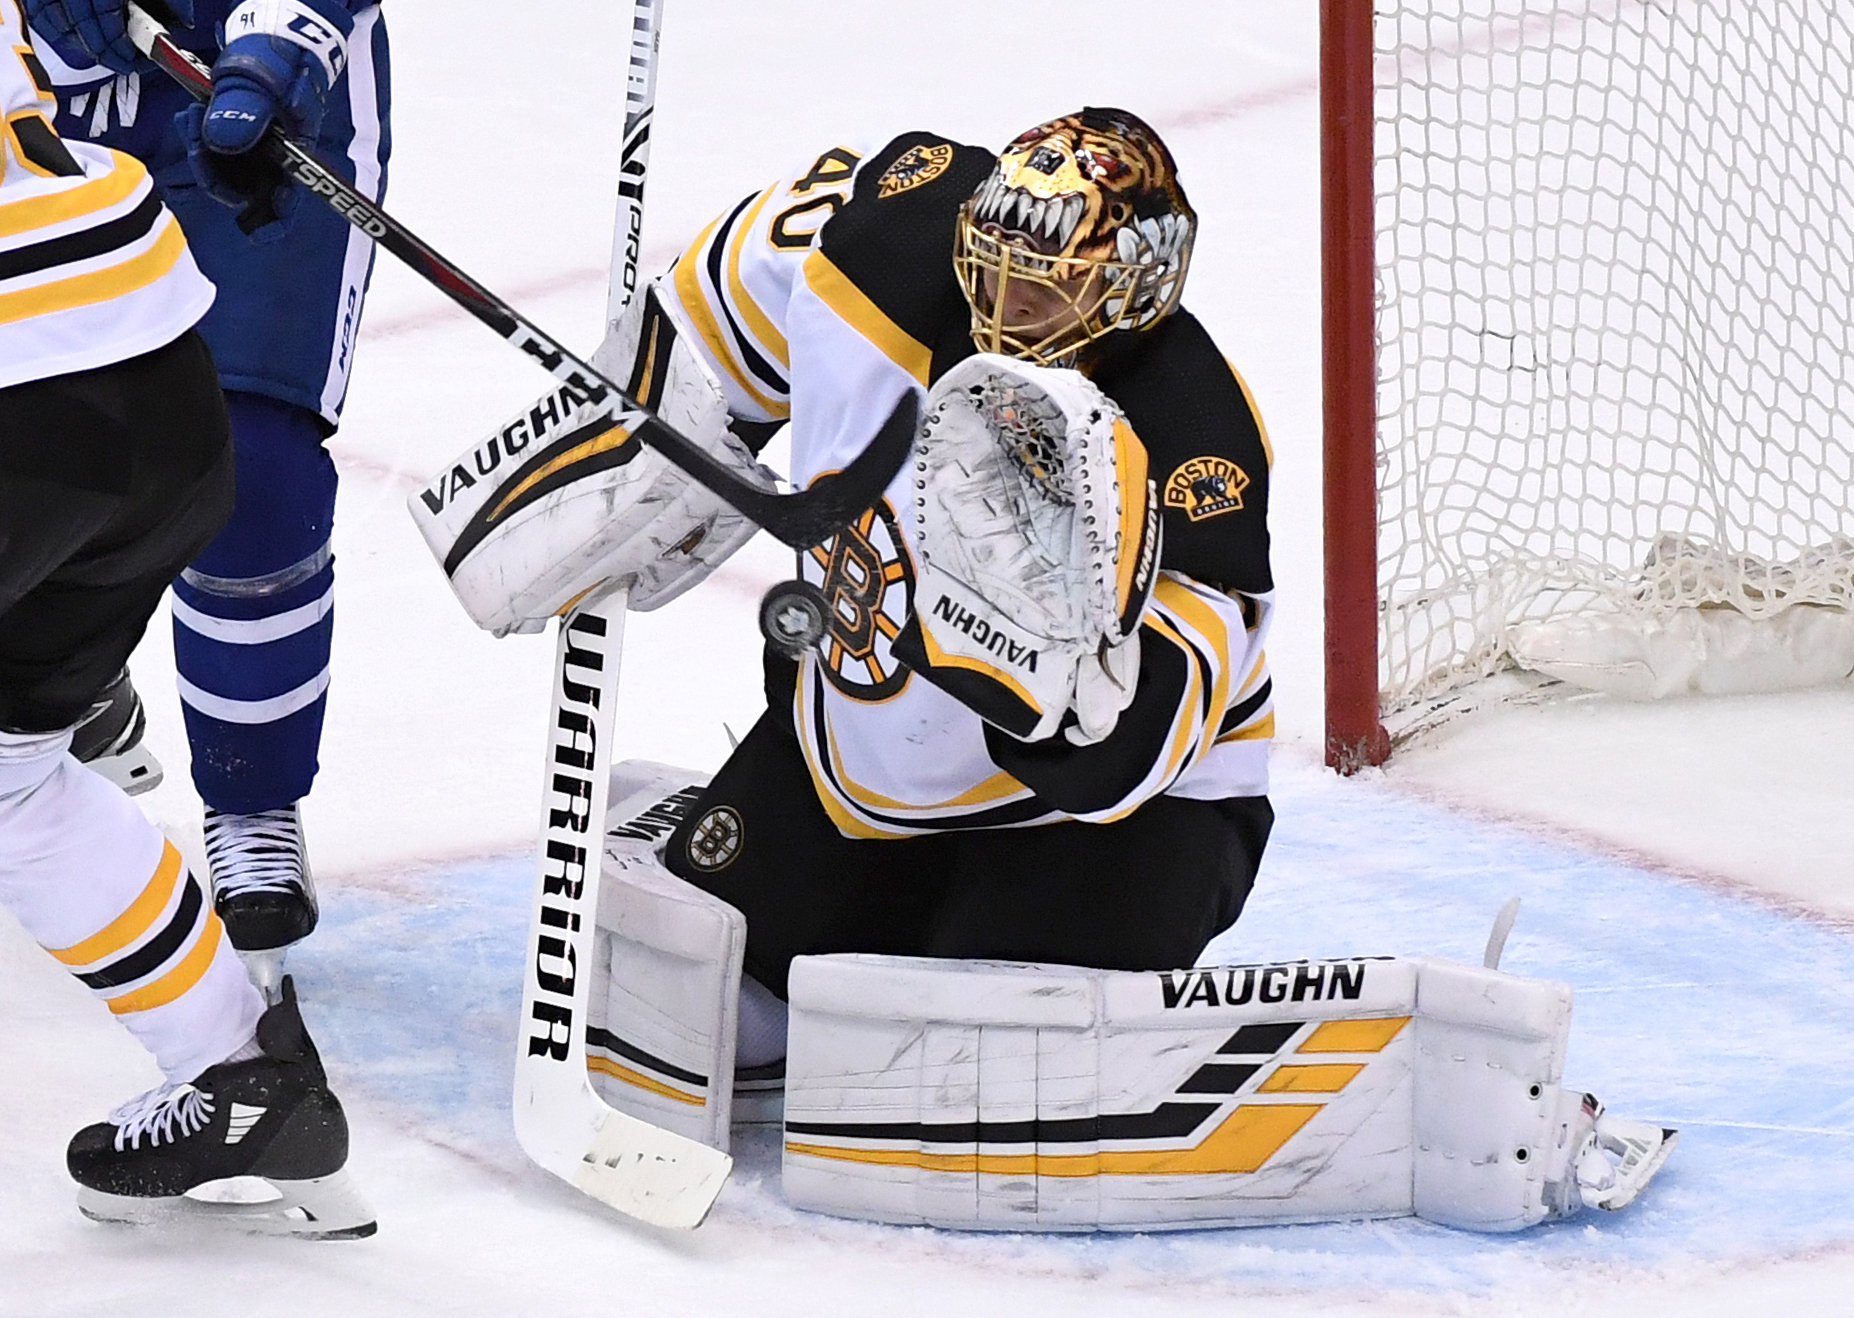 Bruins Tuukka Rask on 500th NHL game: 'goes to show how old I'm